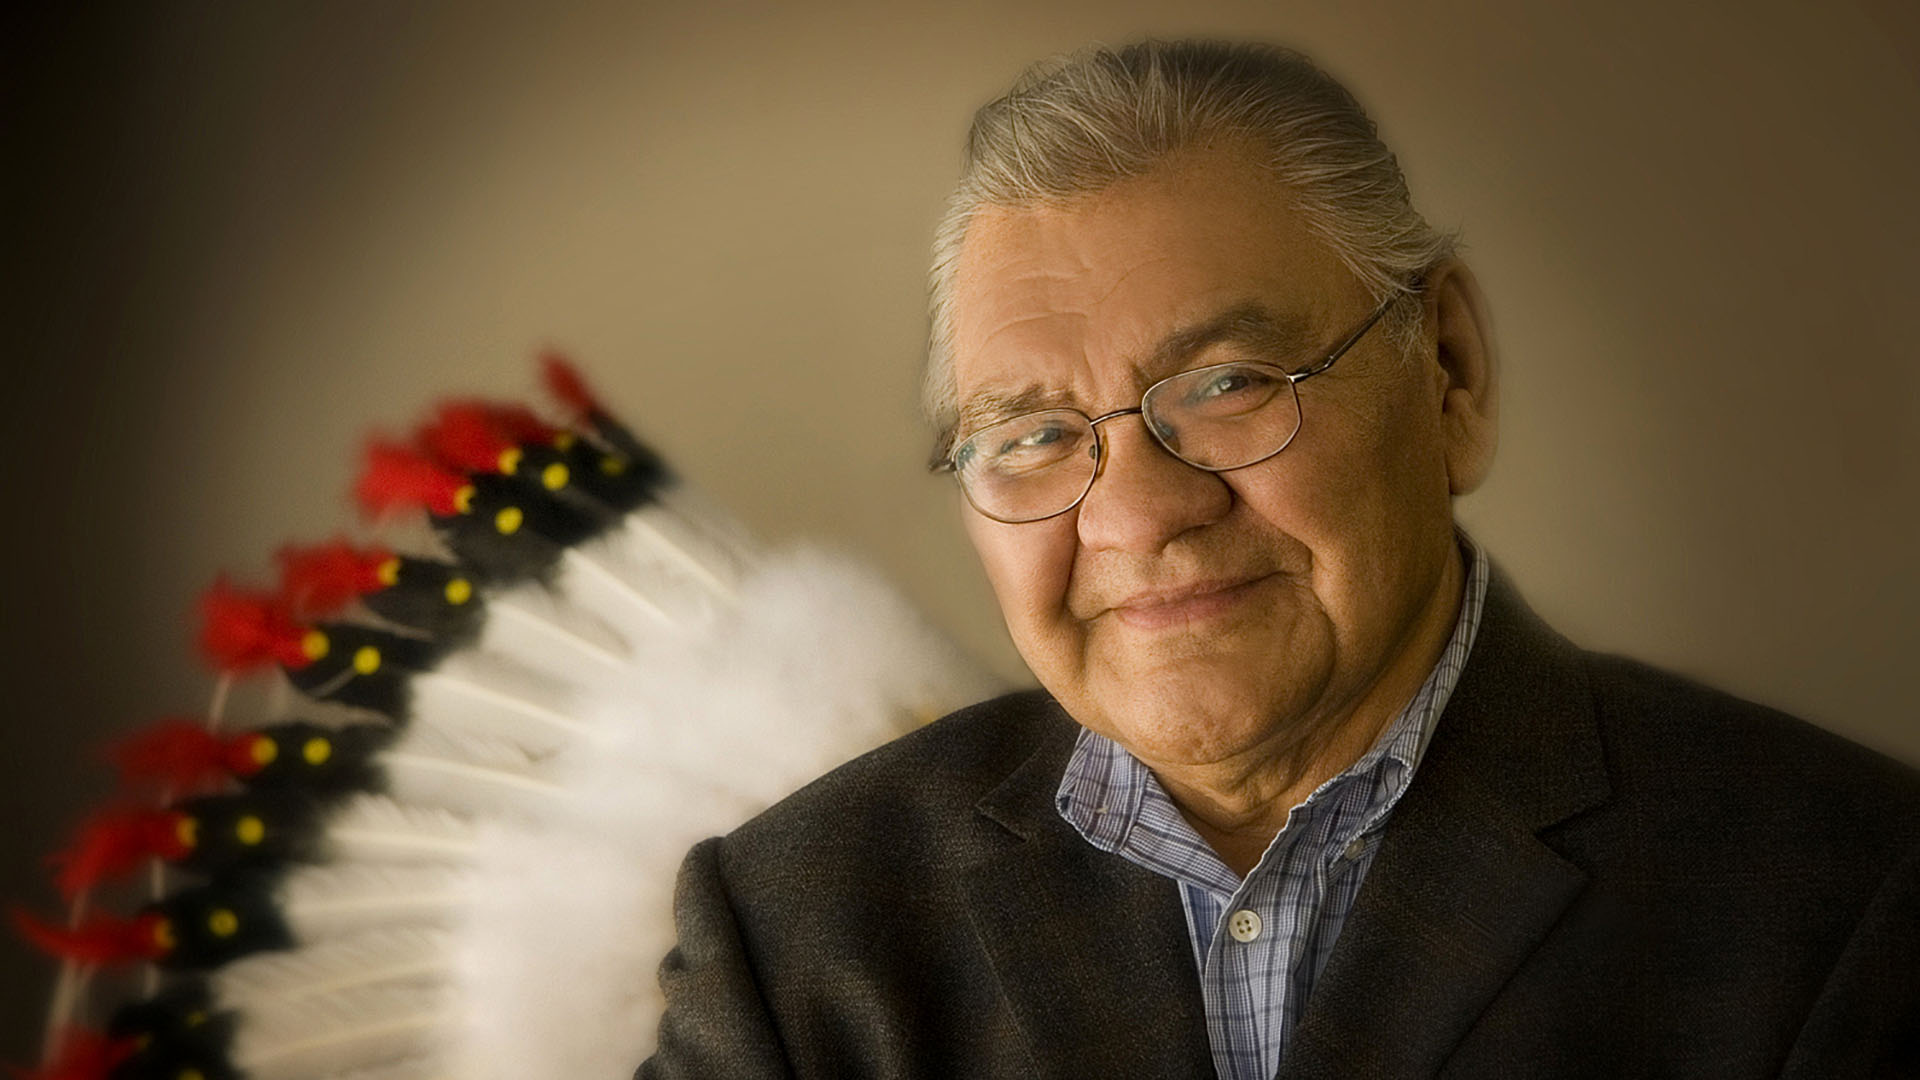 Alberta Order of Excellence member Victor Buffalo